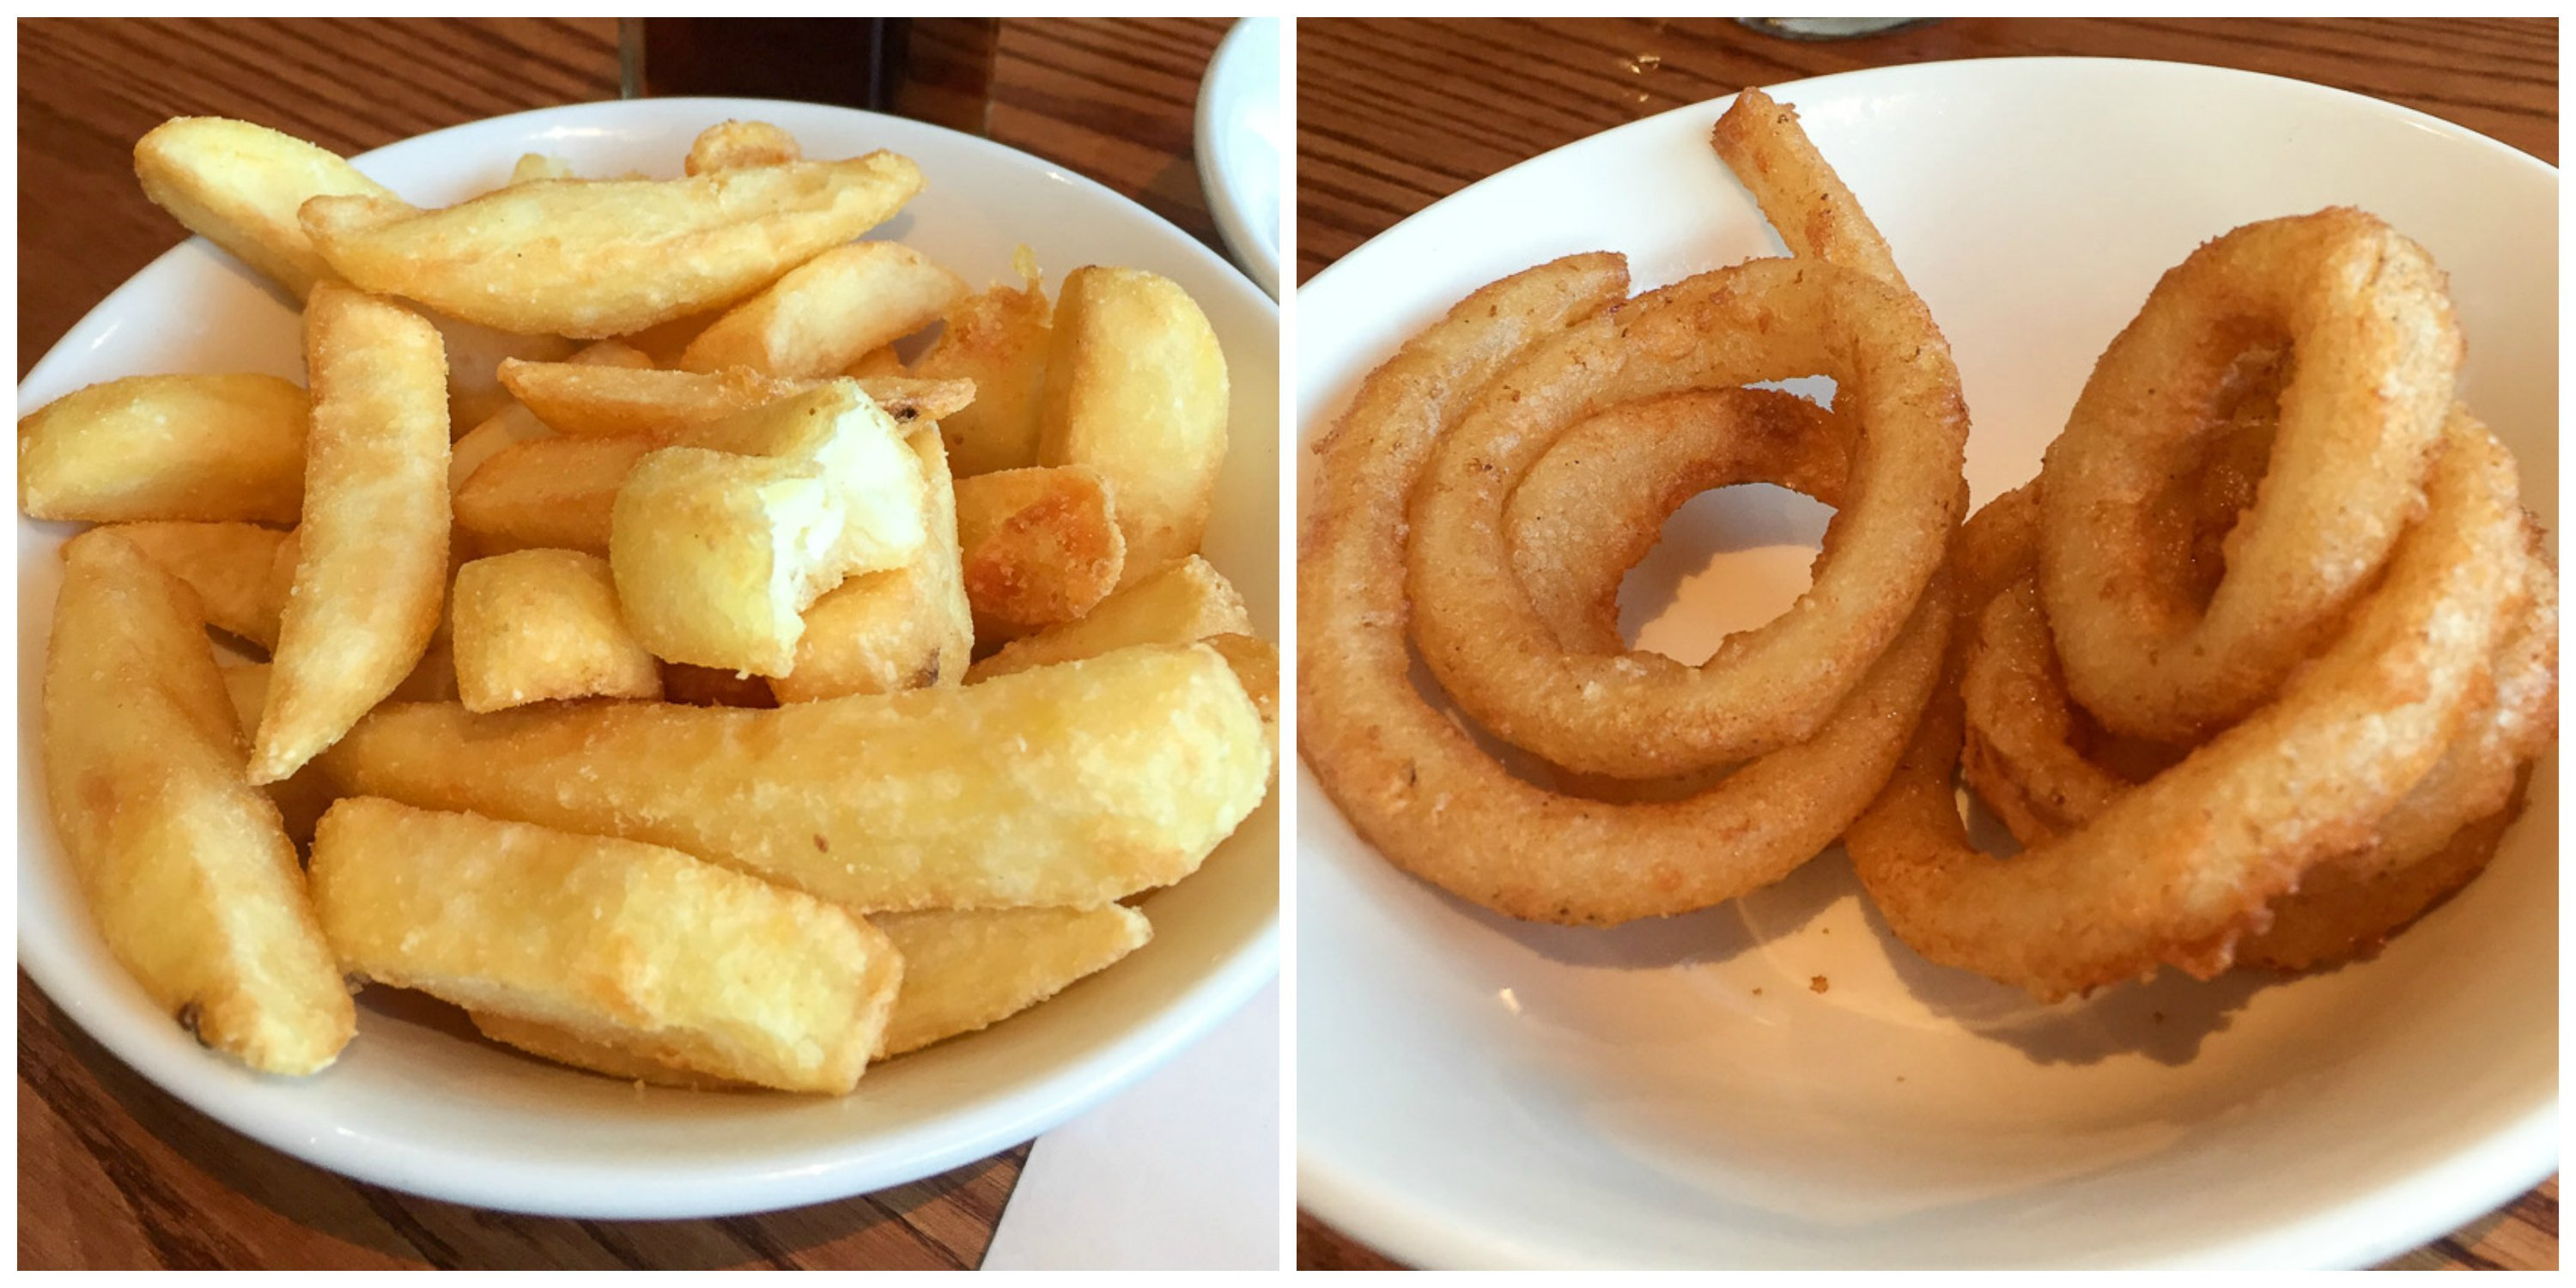 Beefeater chips and onion rings